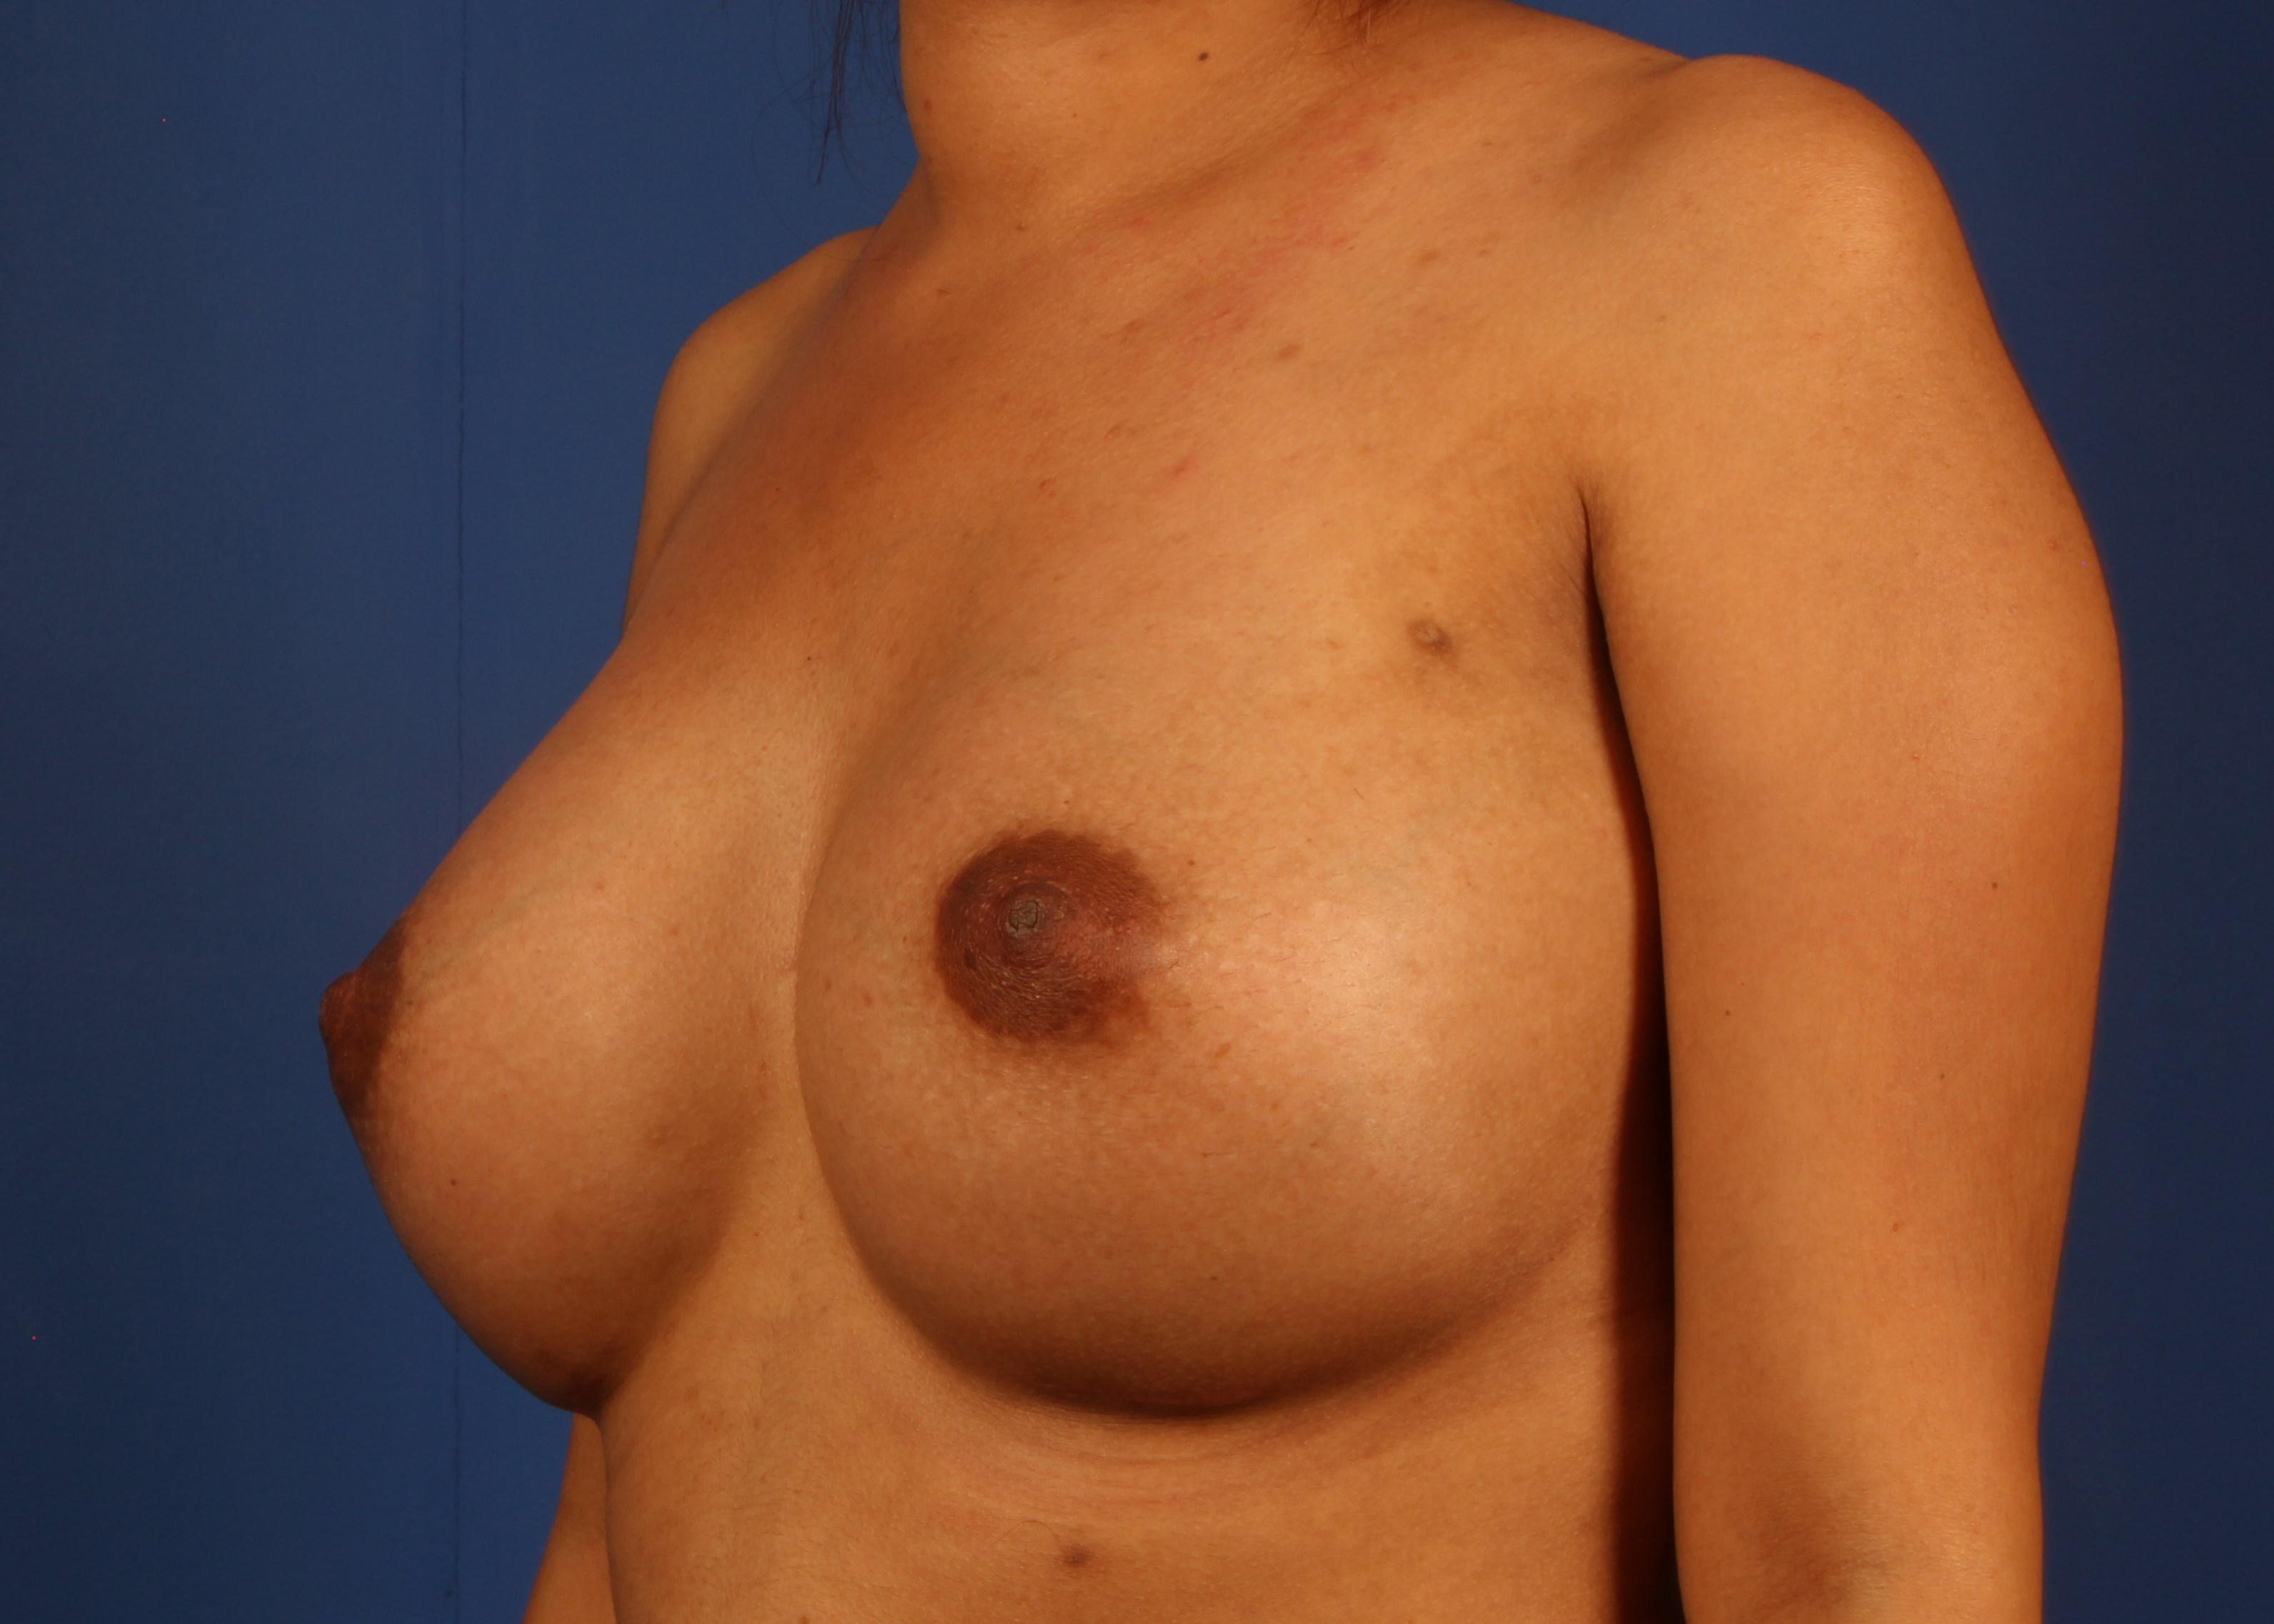 Silicone Implants After - Dr Mata